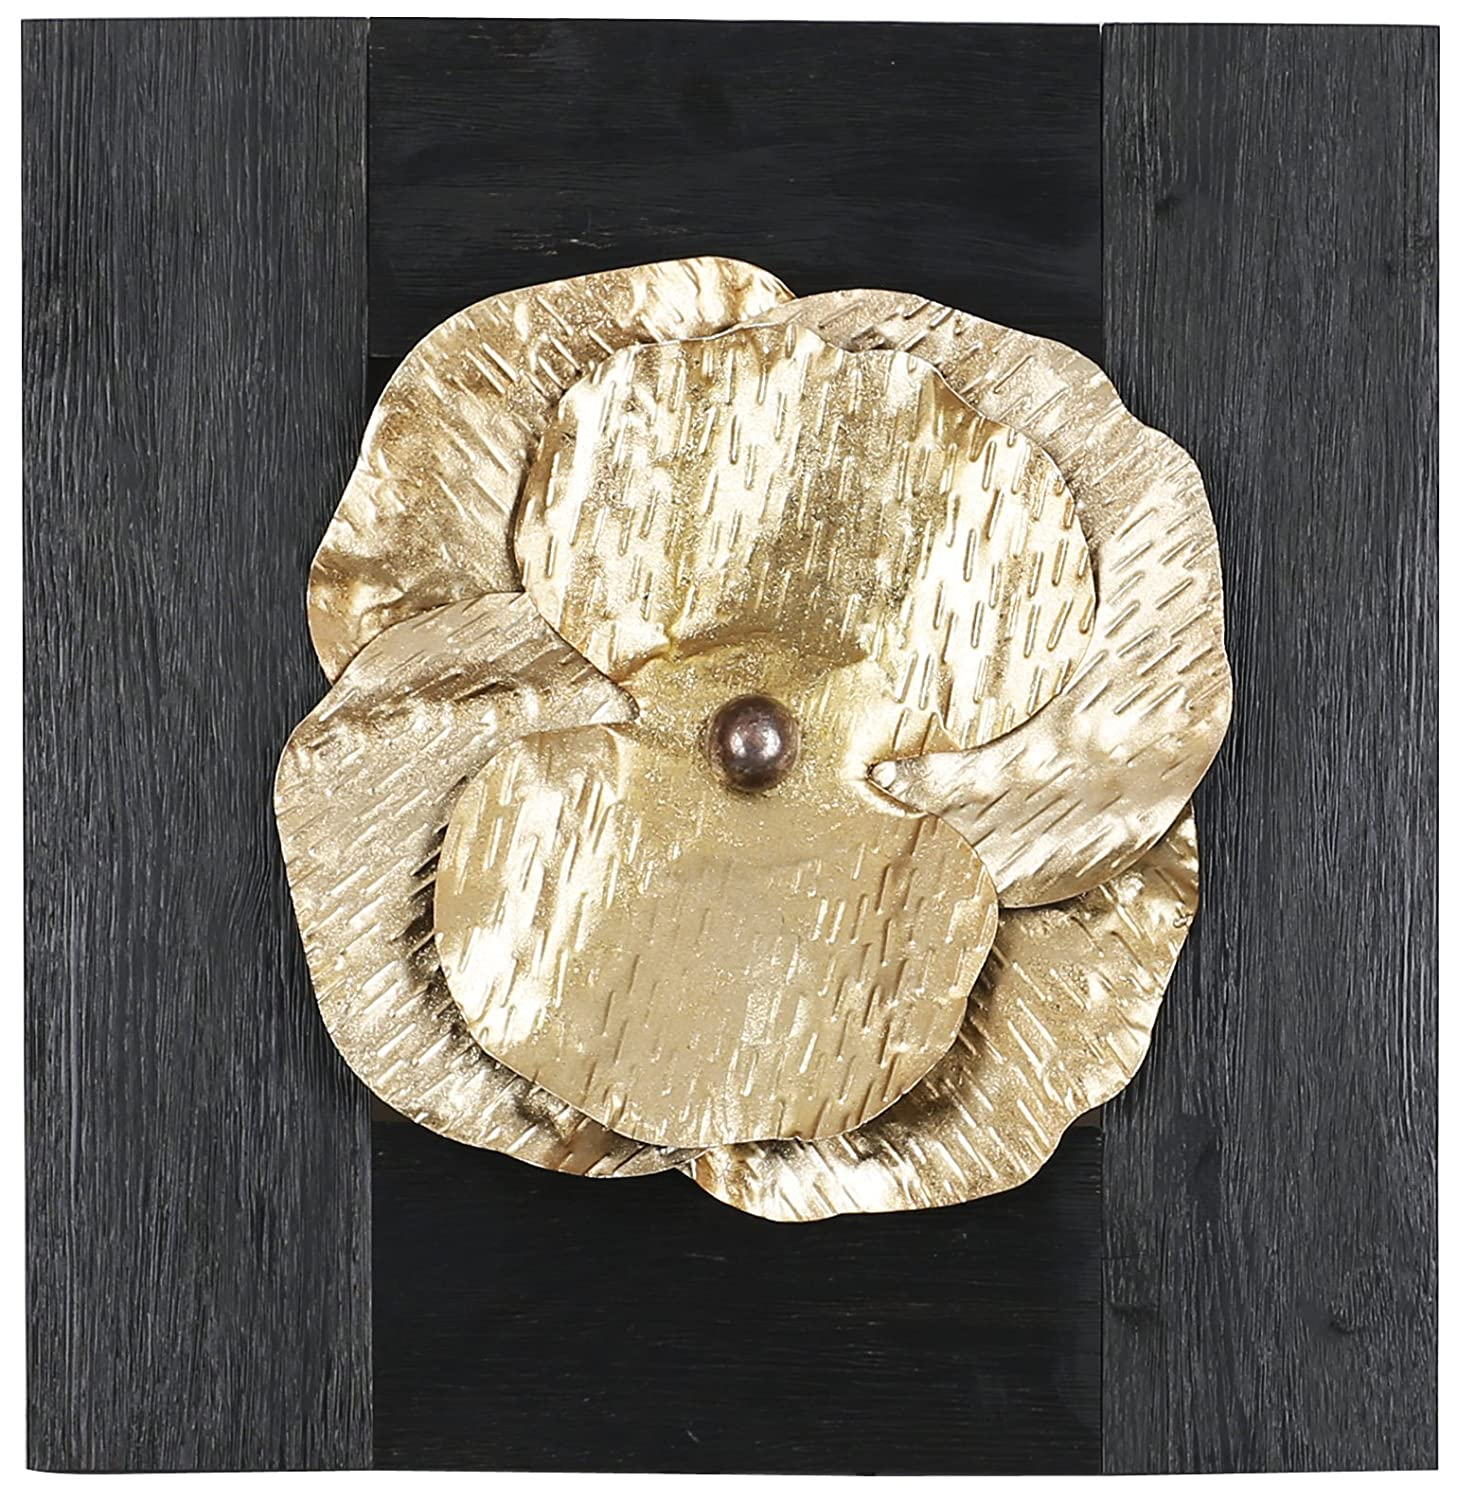 ArtMaison.ca 18.5-Inch by 17.75-Inch Mixed Media Metal Art Décor, Sam O, Gold Metal Floral HobbitHoleCo N2479